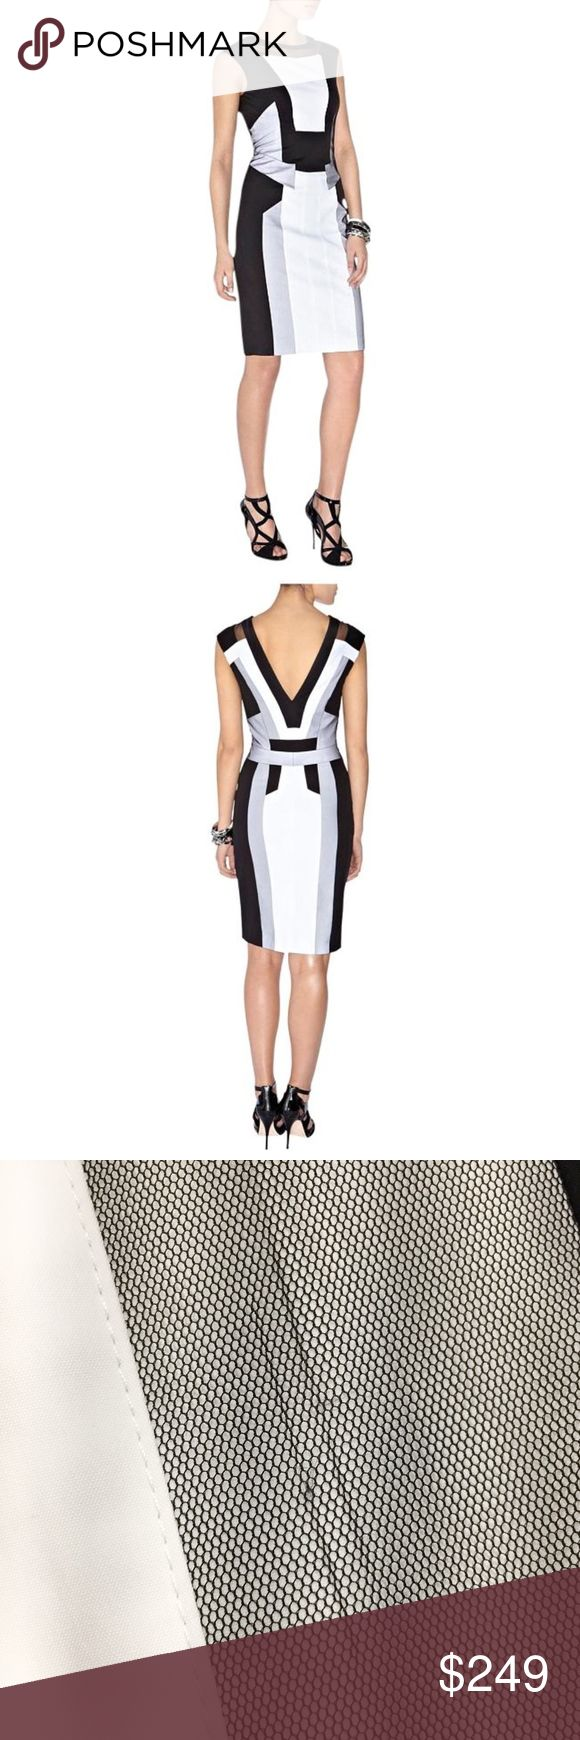 "karen millen • black white graphic sheath dress Gorgeous black & white graphic panel dress from Karen Millen. Features scoop neck front and v neck back, black mesh inset at collar and mesh panel overlays. Thick cotton poplin fabric, fully lined.   • size US 6 / UK 10 --- runs small, best for a size 4 or even a 2, please check measurements! • 33"" bust 